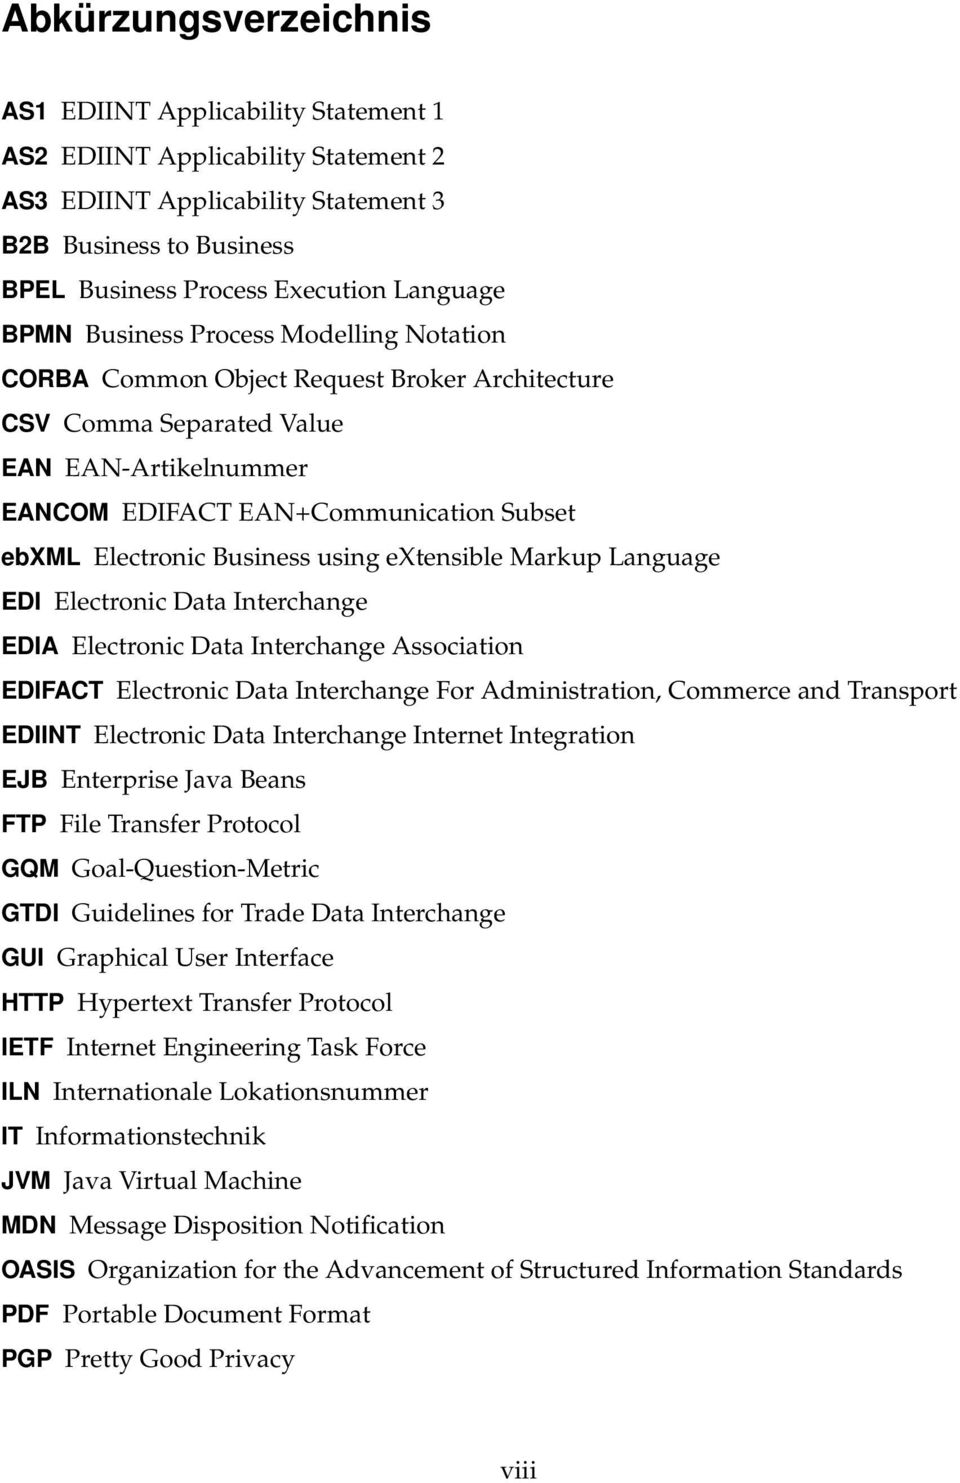 Business using extensible Markup Language EDI Electronic Data Interchange EDIA Electronic Data Interchange Association EDIFACT Electronic Data Interchange For Administration, Commerce and Transport